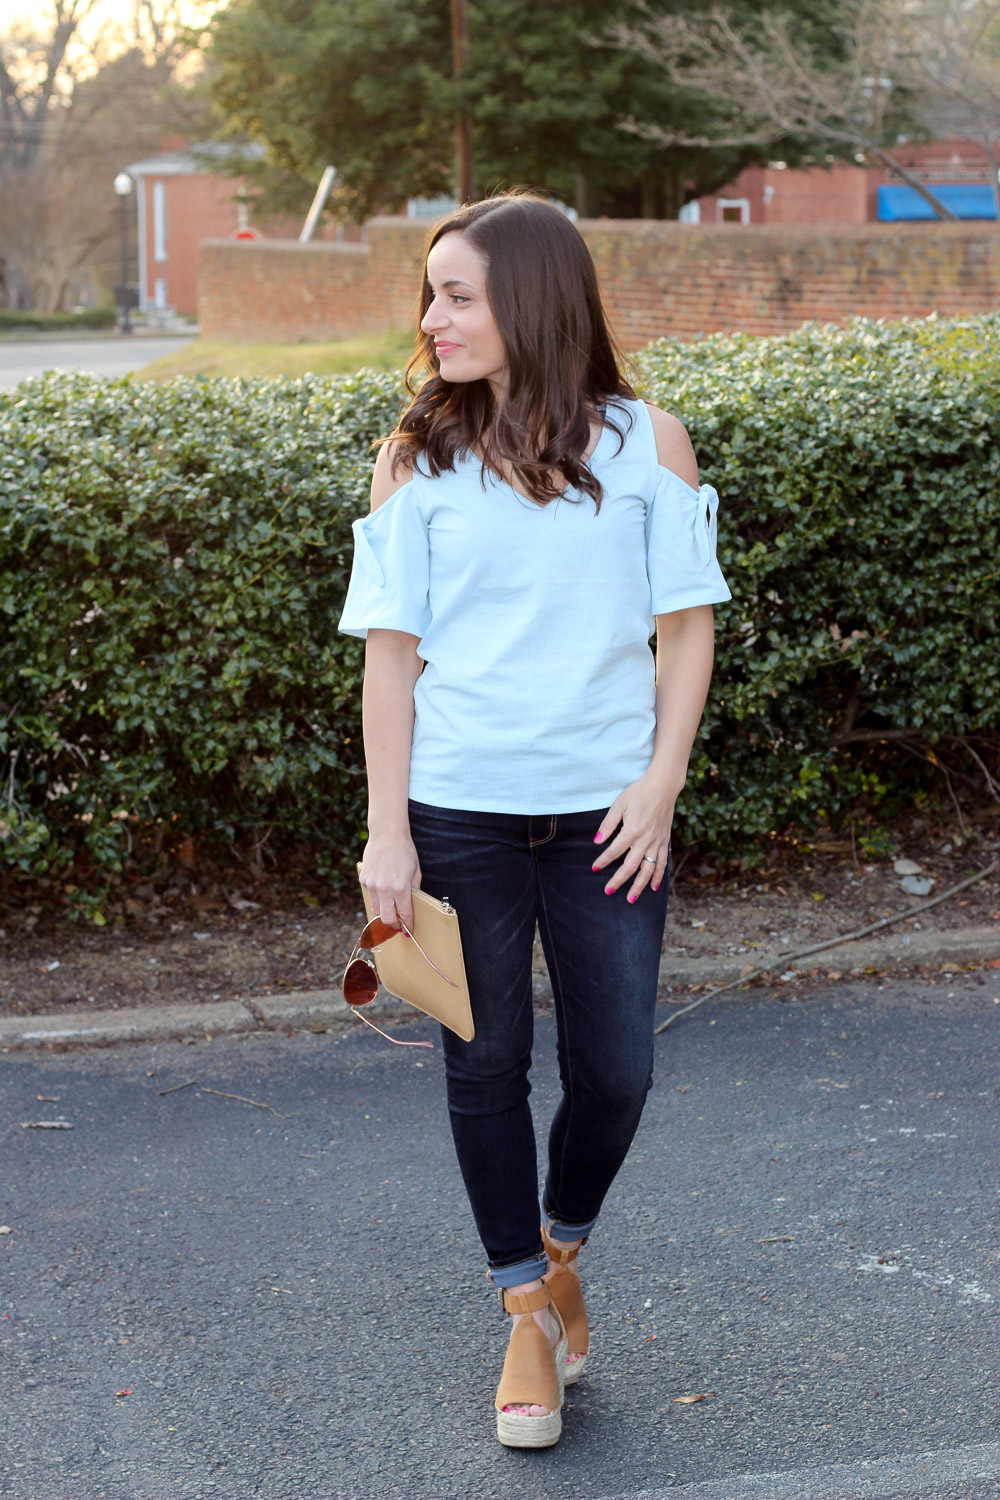 93e57072f62 Giving March The Cold Shoulder Top & Oh, Hey Girl! Link-Up   Pumps ...